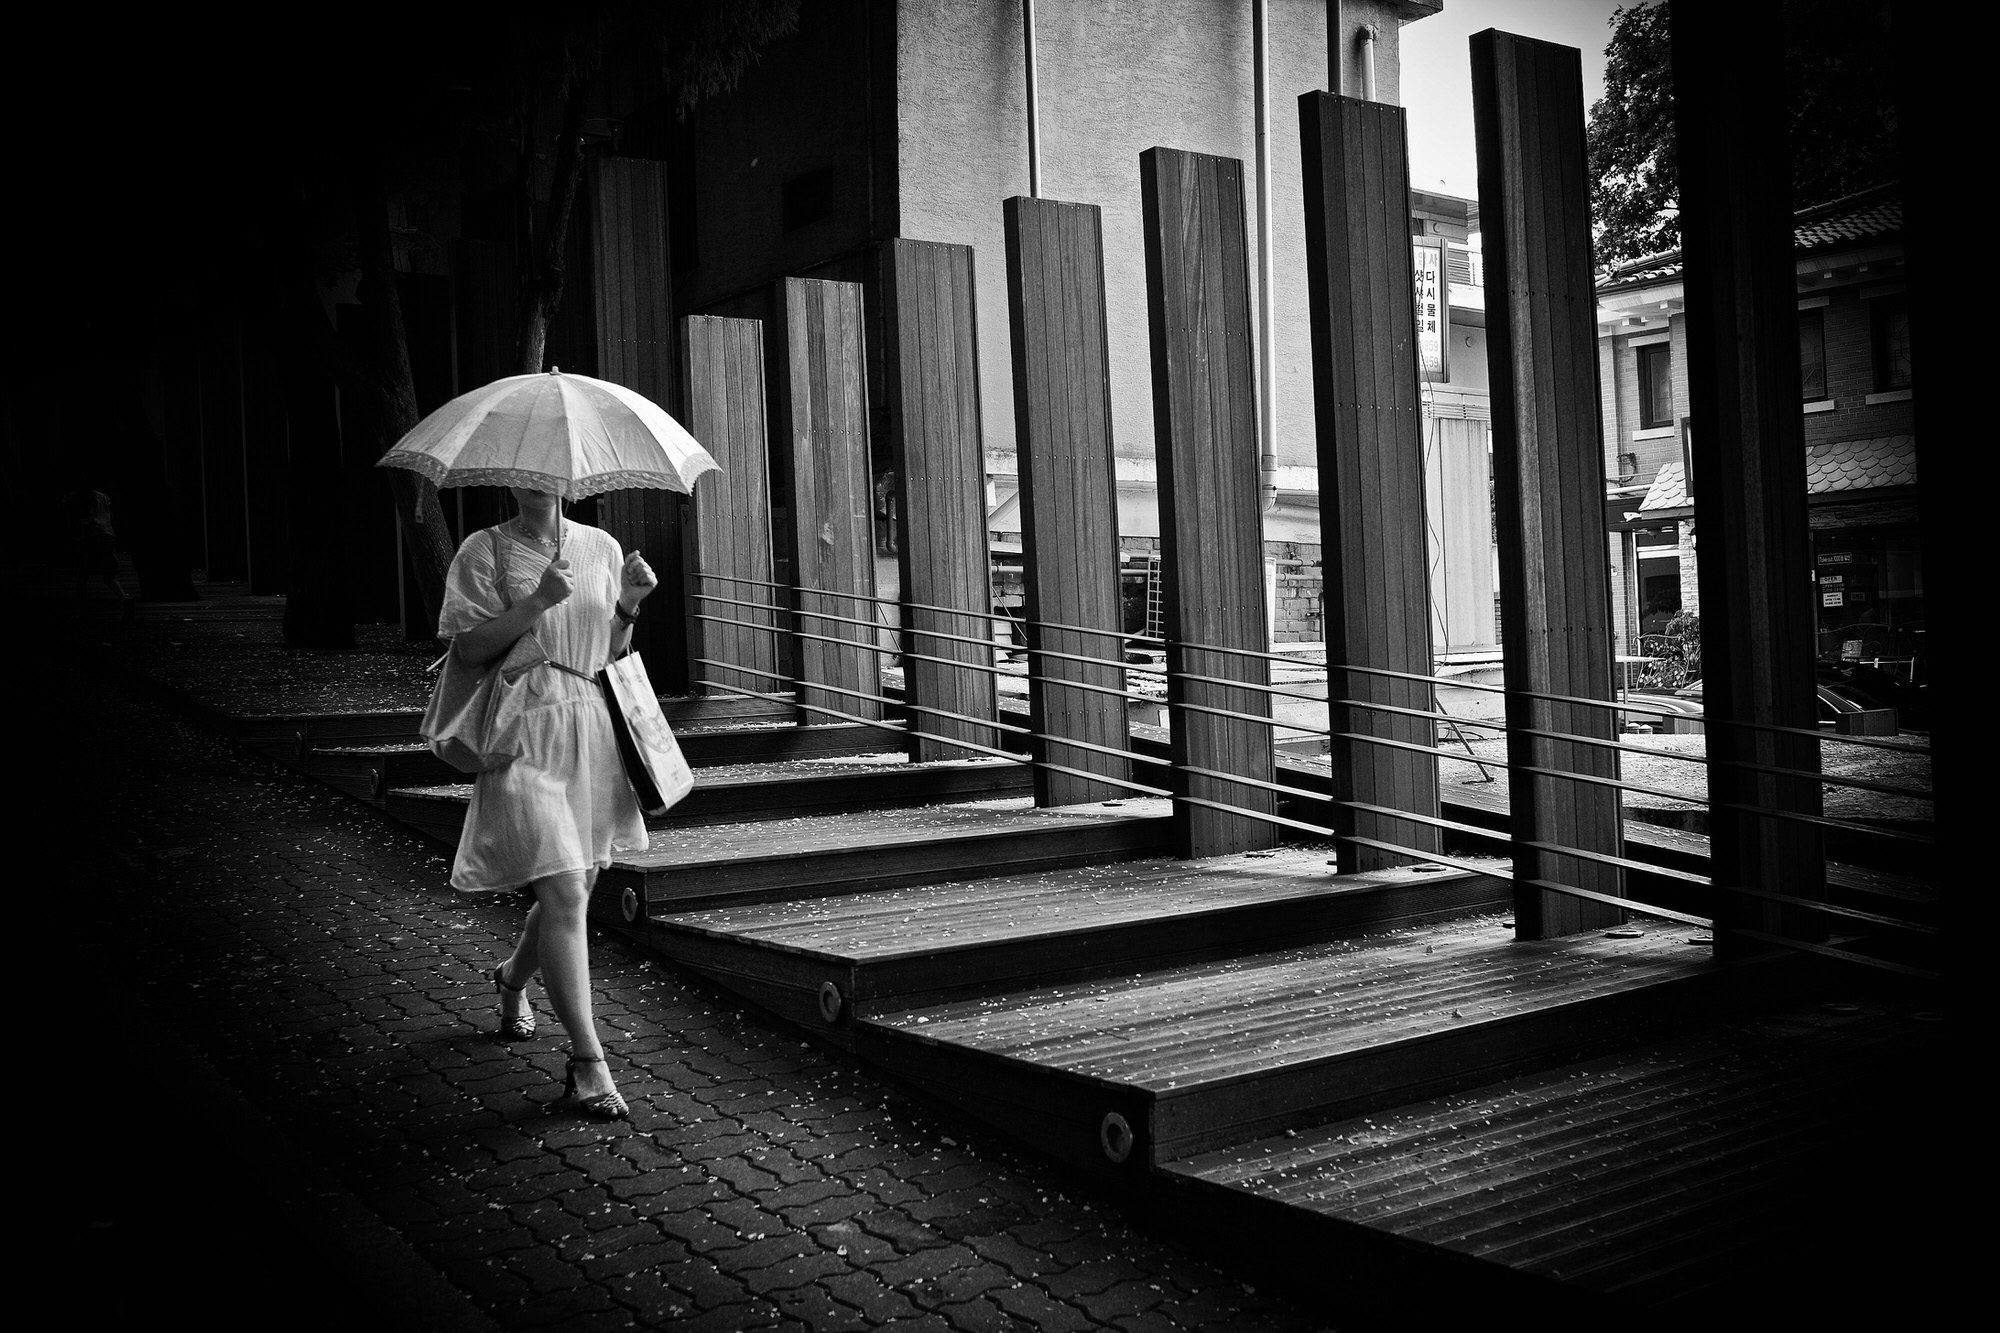 seoul-2009-umbrella-eric-kim-street-photograpy-black-and-white-monochrome-1